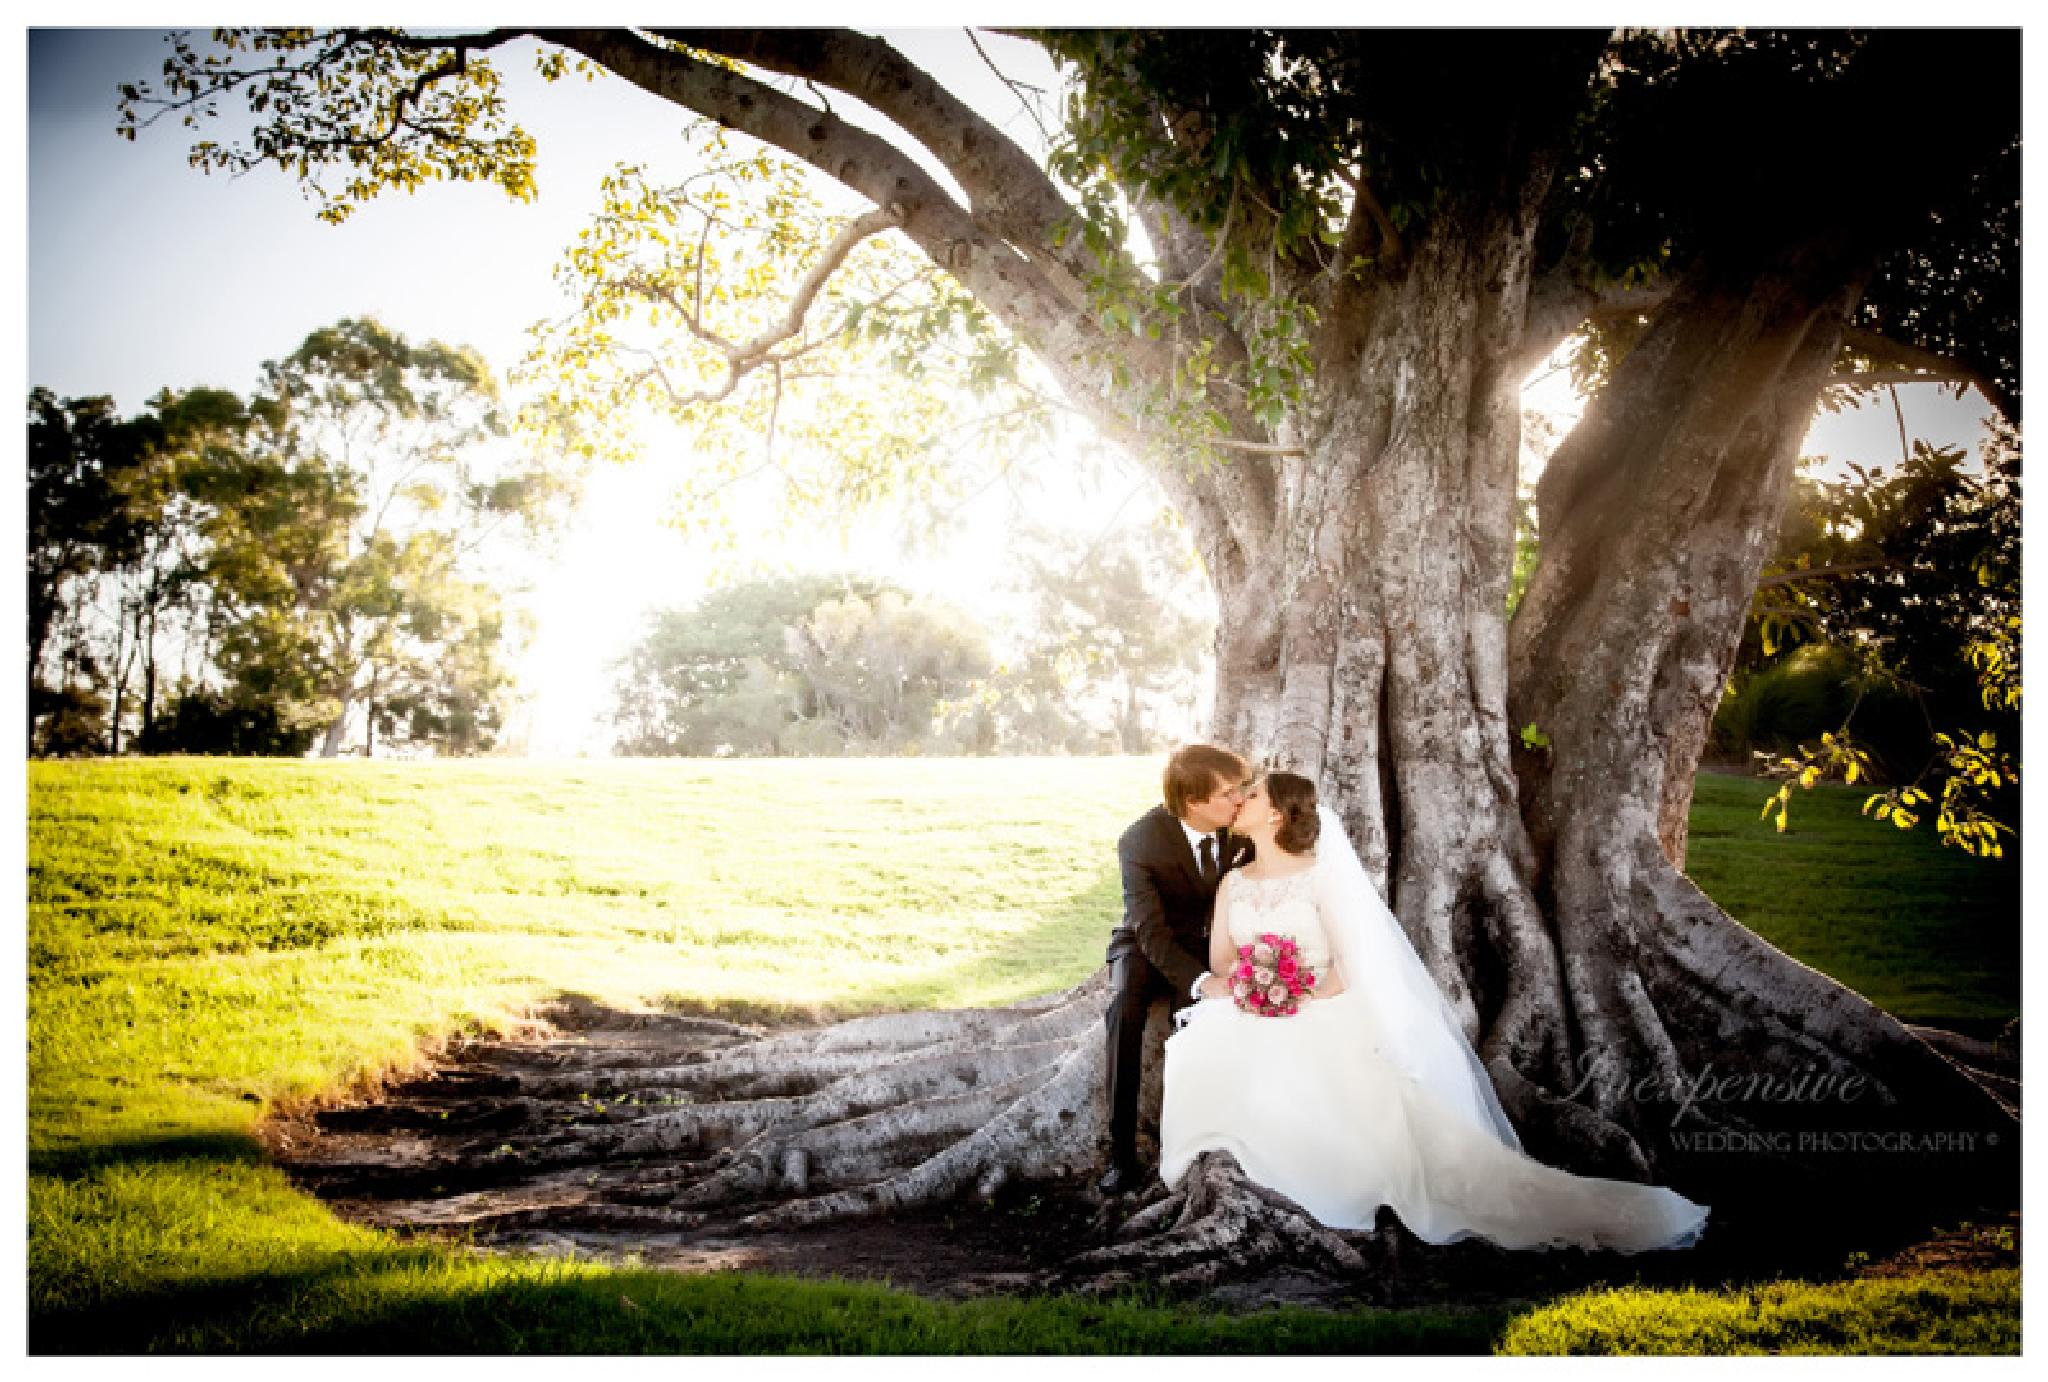 Inexpensive Wedding Photography by Inexpensive Wedding Photography